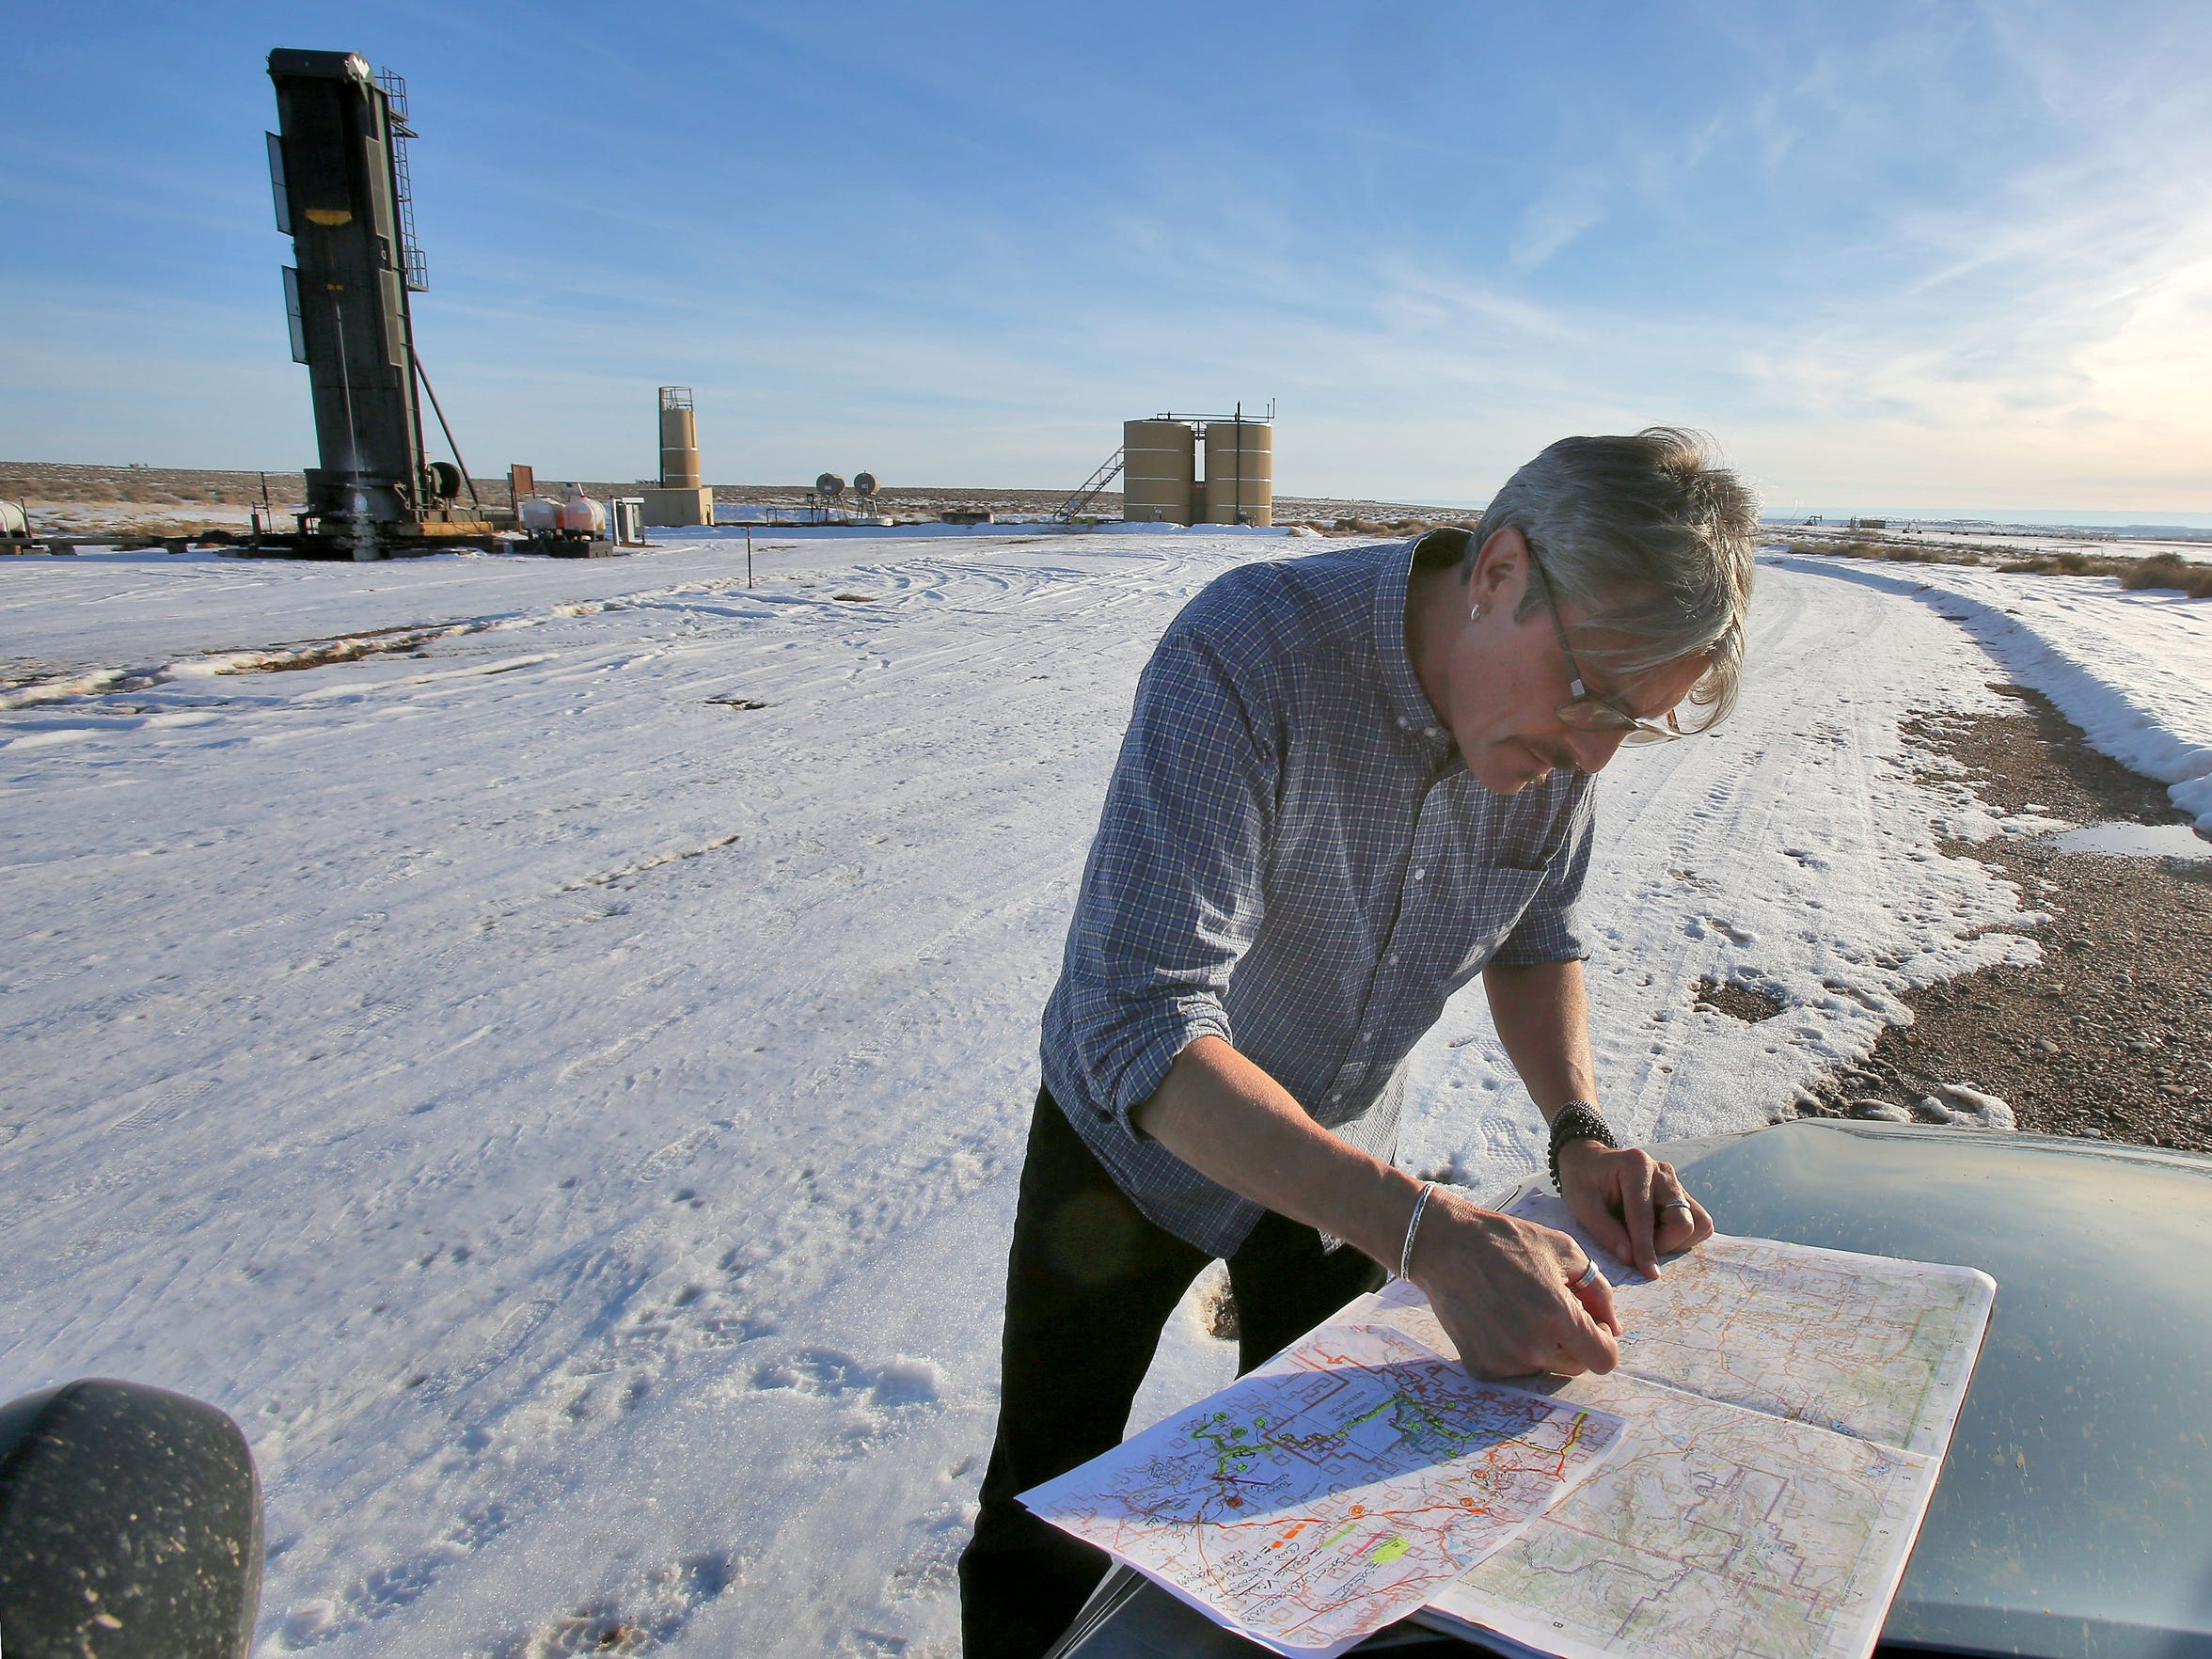 Tim Ream of WildEarth Guardians explores oil and gas